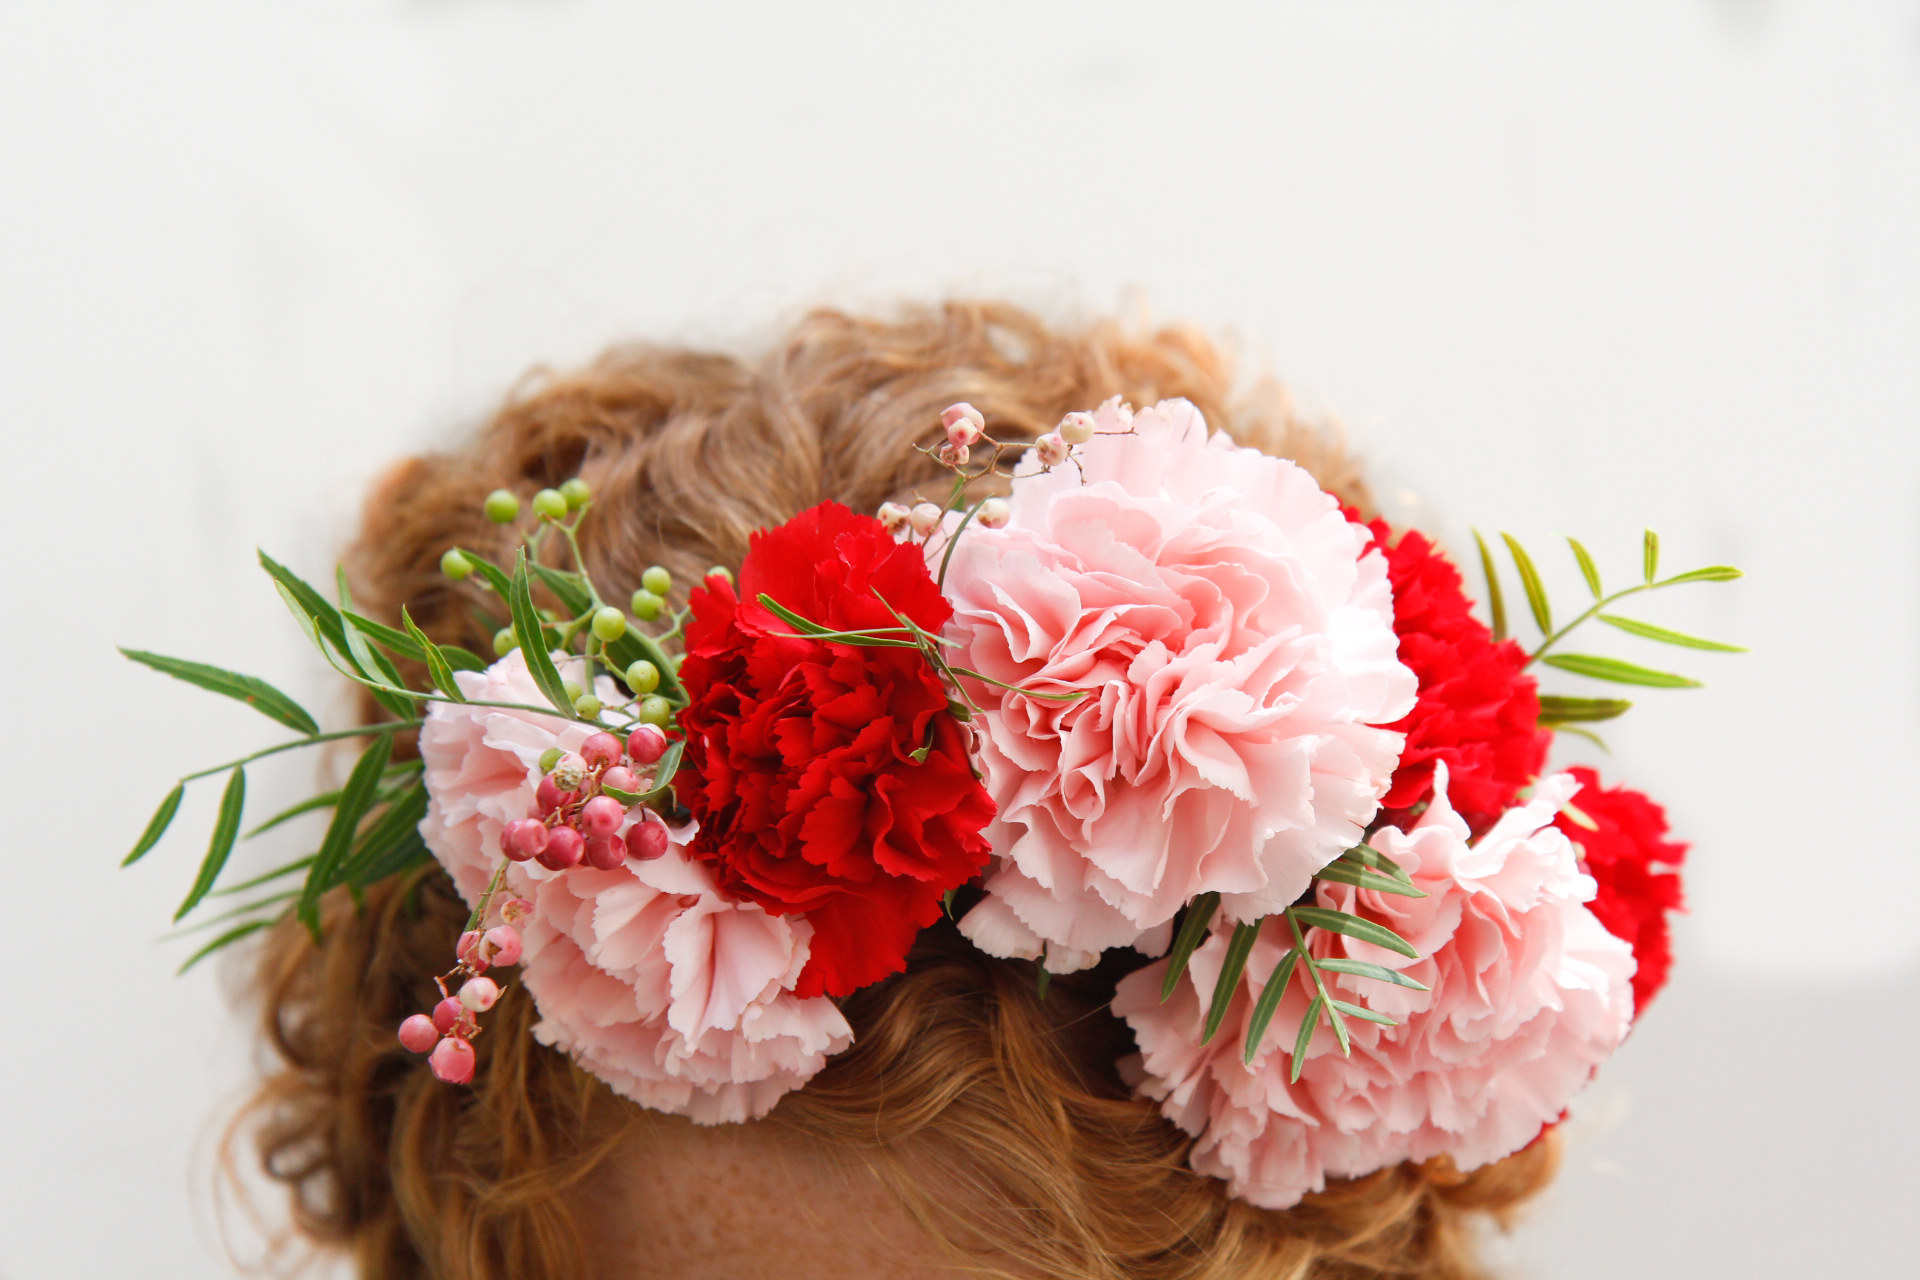 A crown made of carnations will last a long time but will look very different when dried. This crown is festive and fun with pink and red carnations and a bit of pink peppercorn.